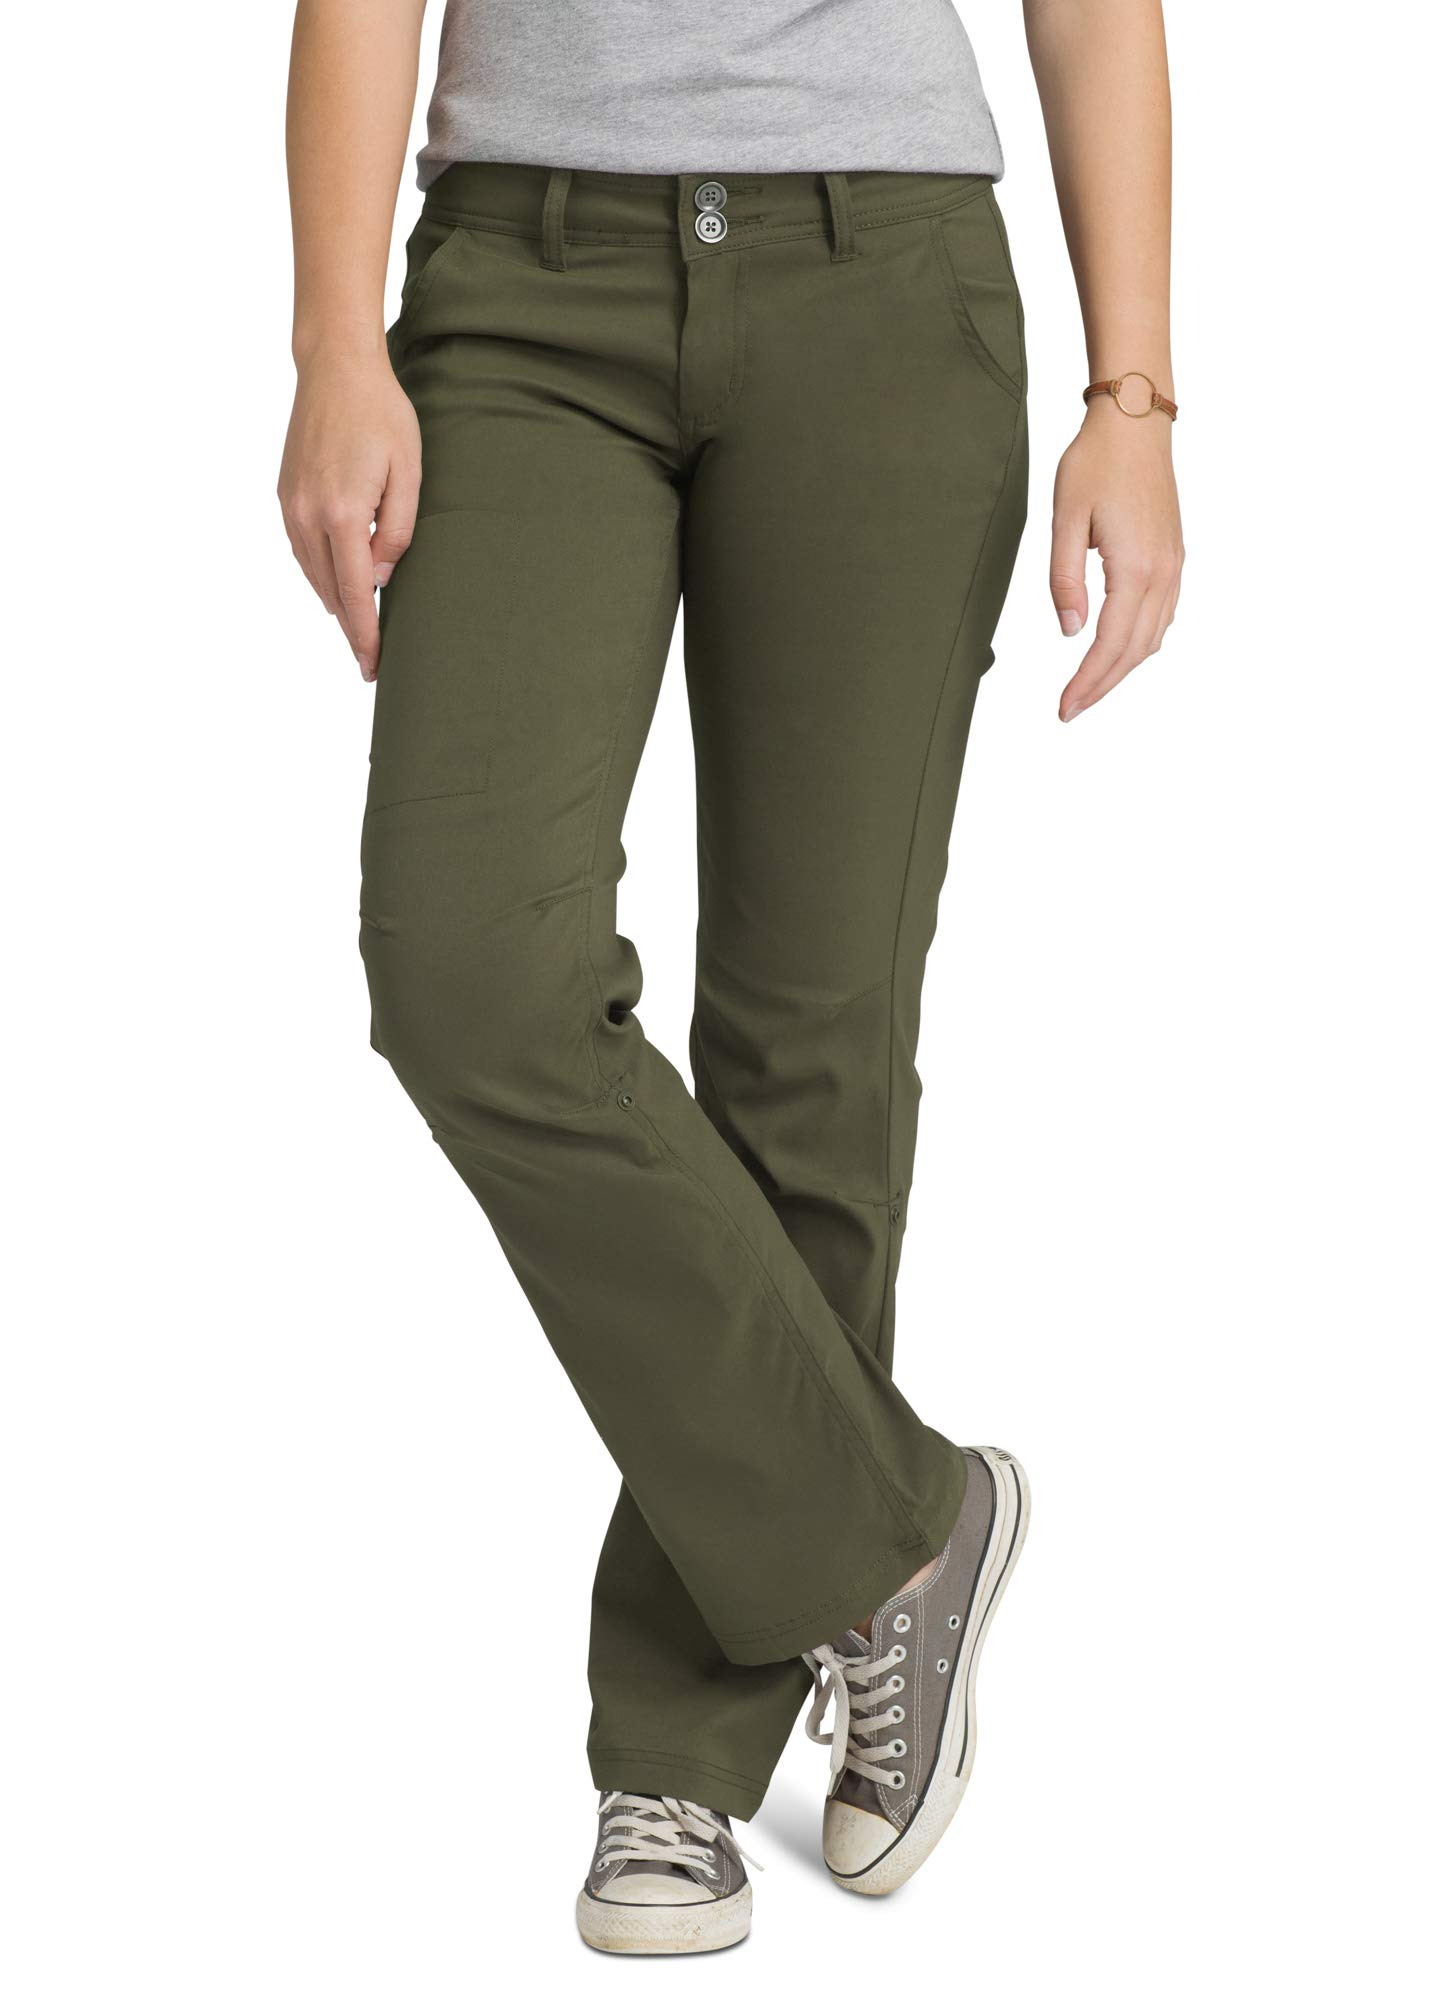 prAna - Women's Halle Roll-up, Water-Repellent Stretch Pants for Hiking and Everyday Wear, Regular Inseam, Cargo Green, 8 by prAna